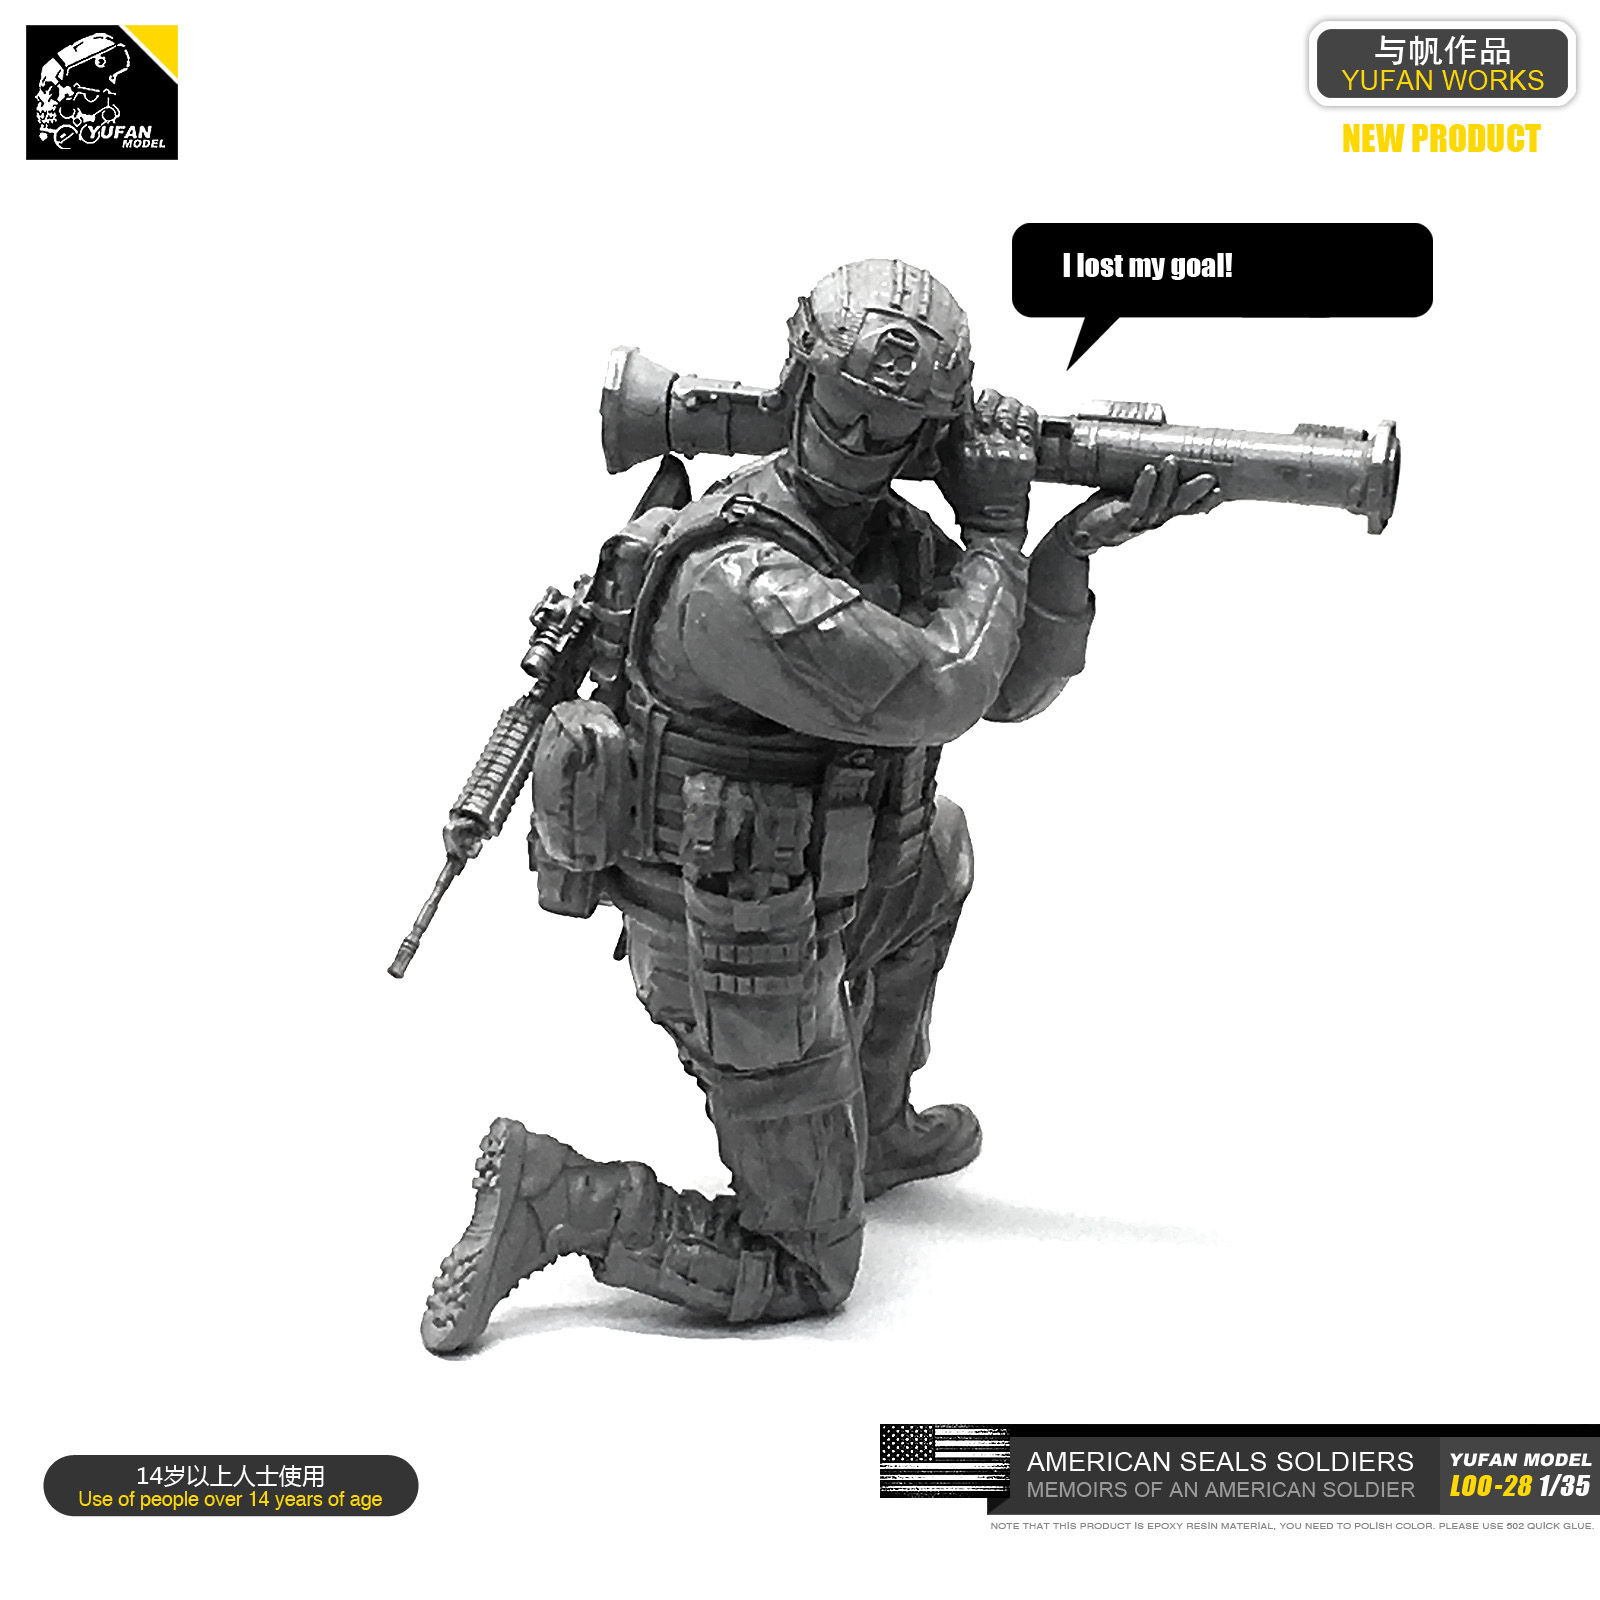 1/35 Resin Kits US Navy SEAL Anti-armor Resin Soldier Self-assembled LOO-28